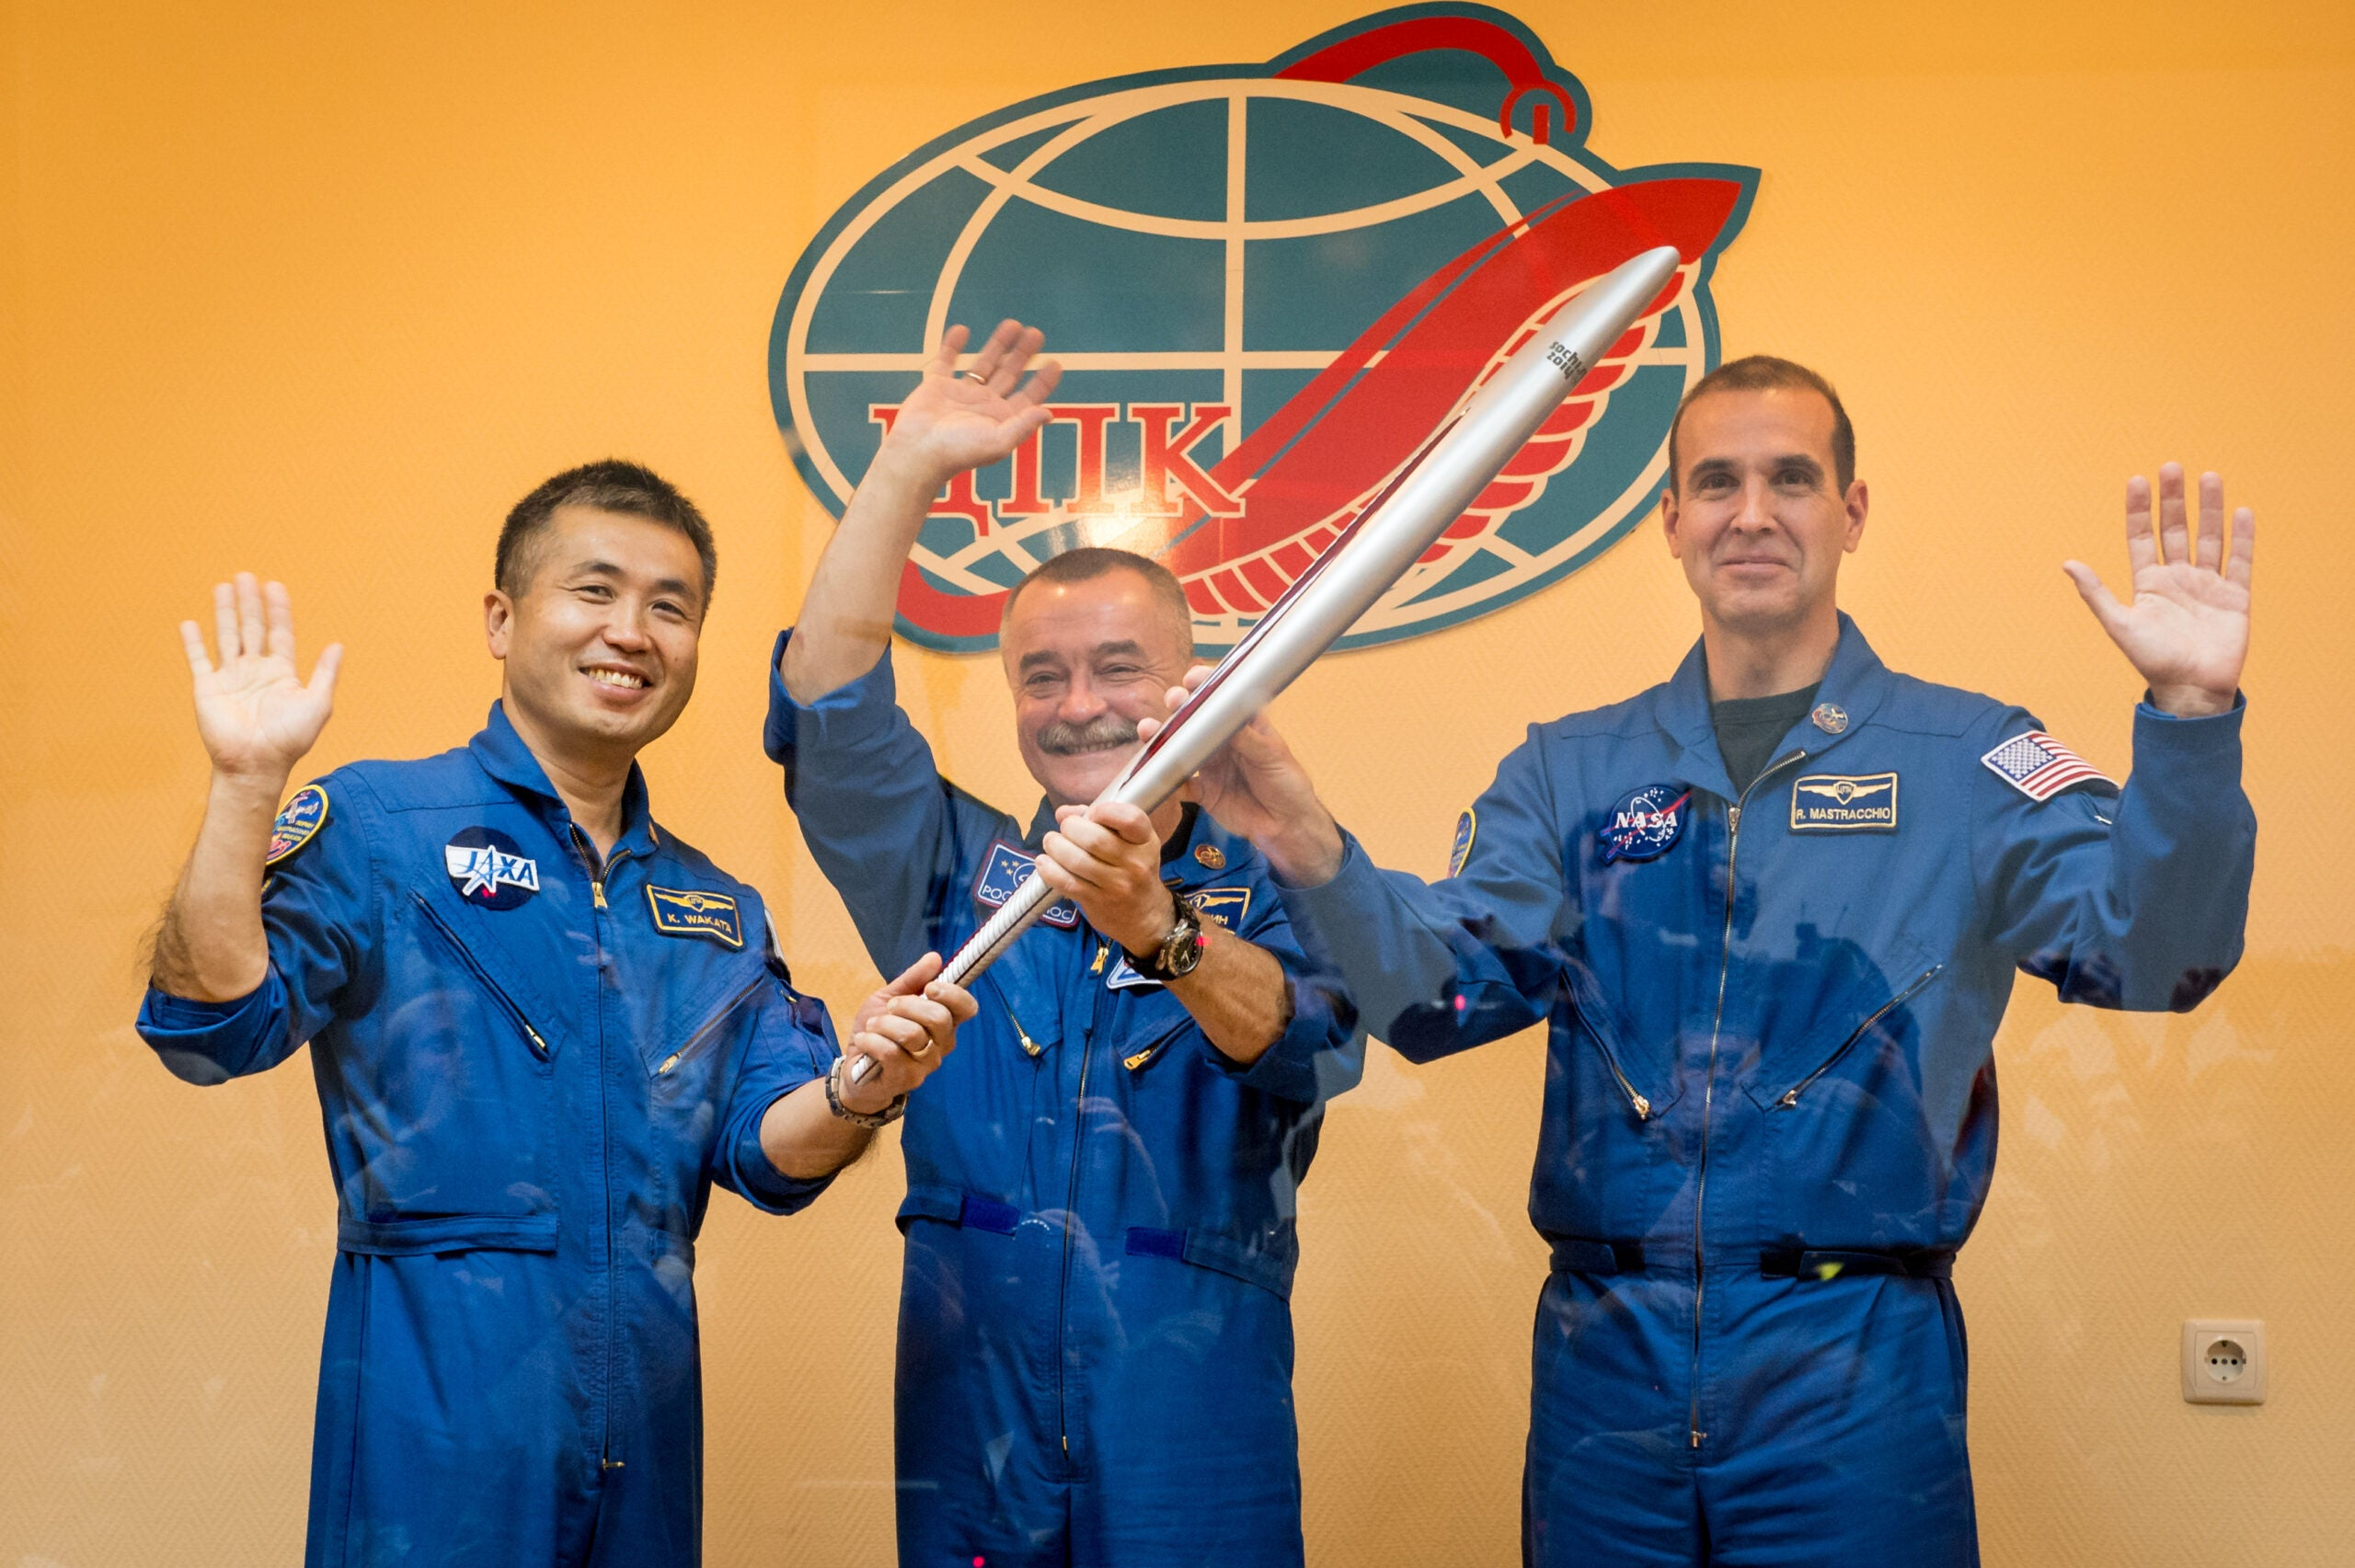 Watch The Next Soyuz Launch To The ISS At 11:14 EST Tonight